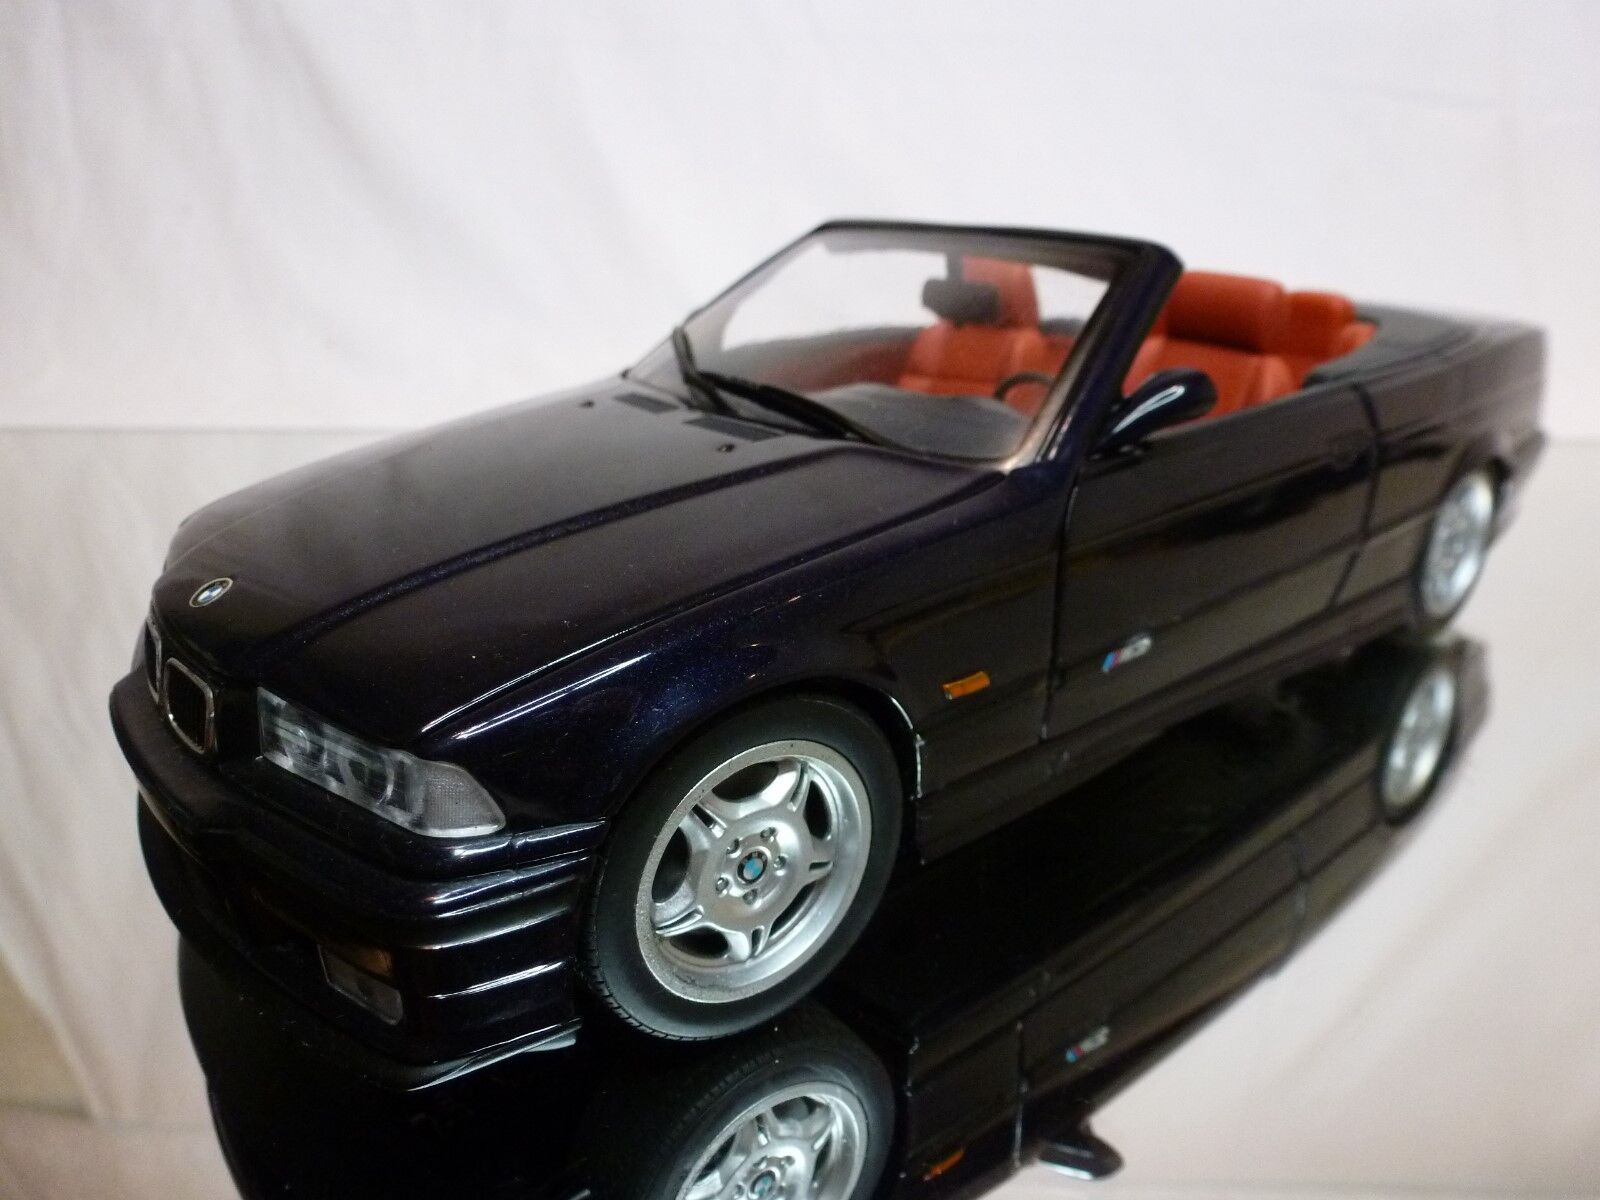 UT MODELS 1 18 - BMW M3 E36 CABRIOLET  - DAYTONA VIOLET - EXCELLENT CONDITION.